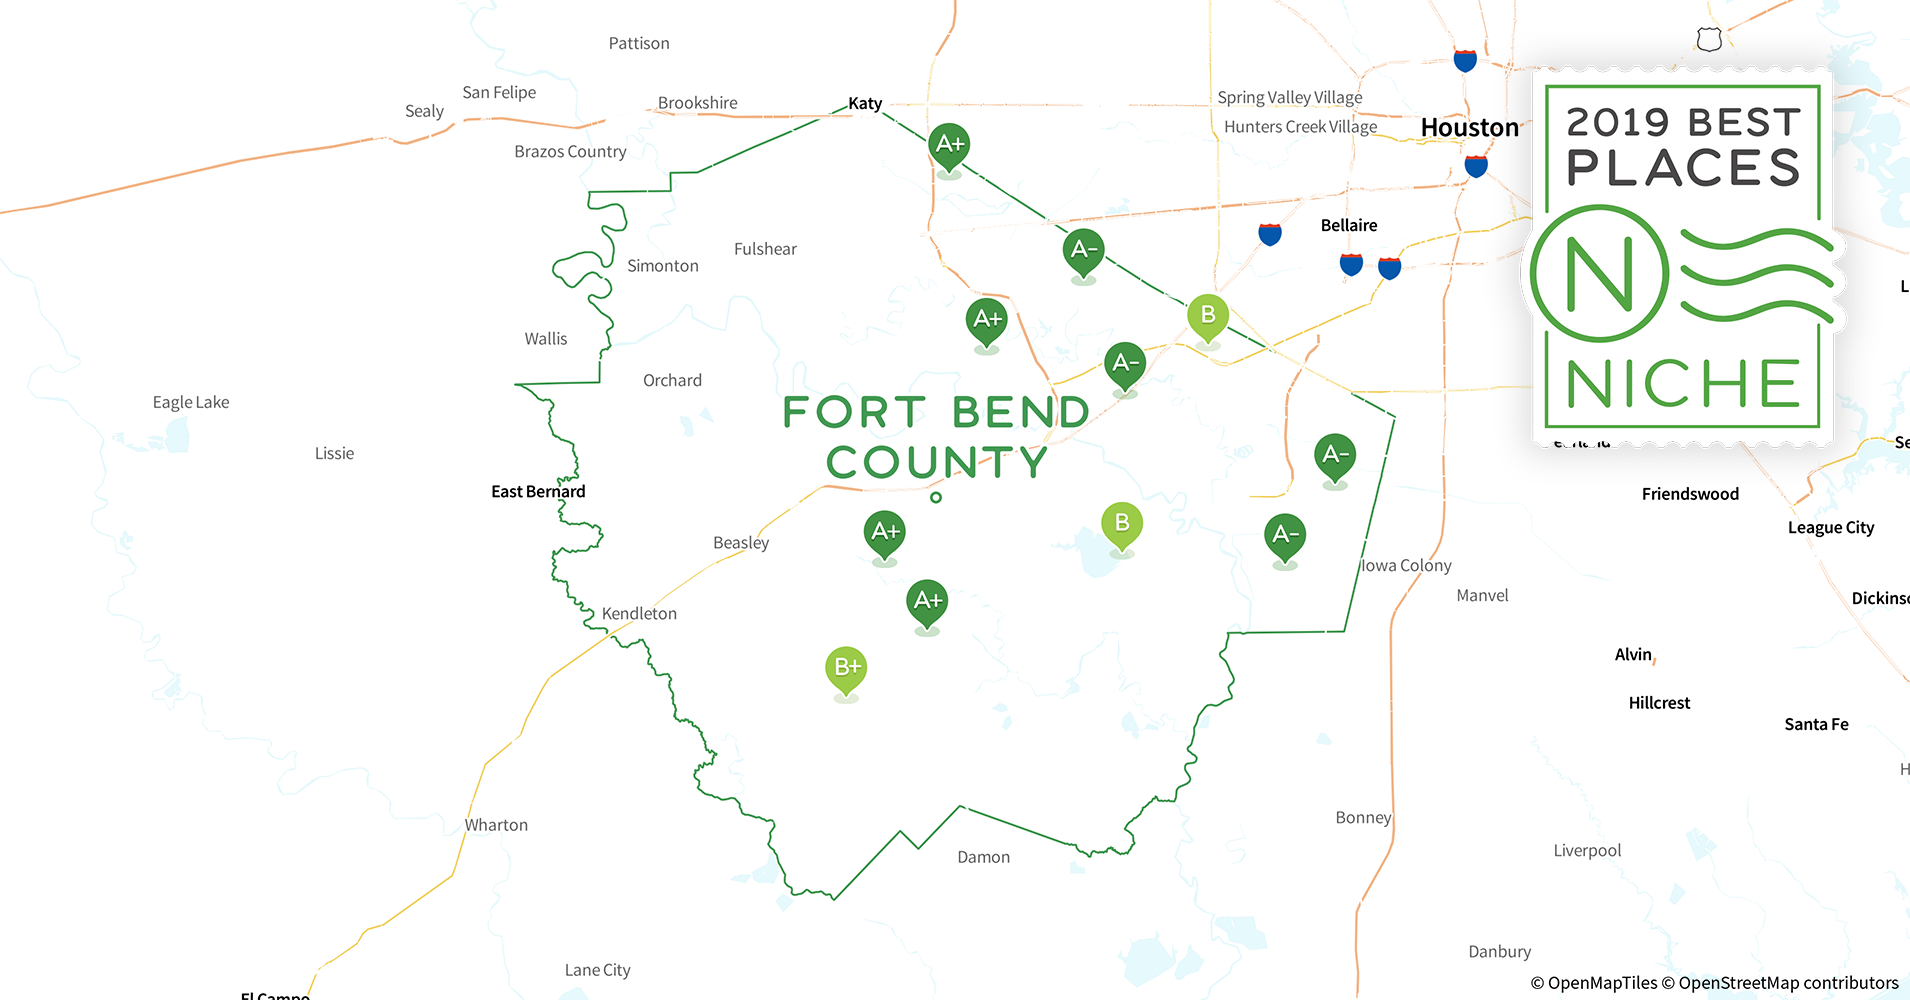 2019 Best Places to Live in Fort Bend County, TX - Niche Zip Codes Map Of Sugarland on ariana grande zip code, beaumont zip code, montgomery zip code, fulshear zip code, abilene zip code, rosharon zip code, lake jackson zip code, friendswood zip code, victoria zip code, baytown zip code, frisco zip code, cypress zip code, one direction zip code, sugar land texas zip code, manvel zip code, pearland zip code, the rolling stones zip code, irving zip code, amarillo zip code, lubbock zip code,